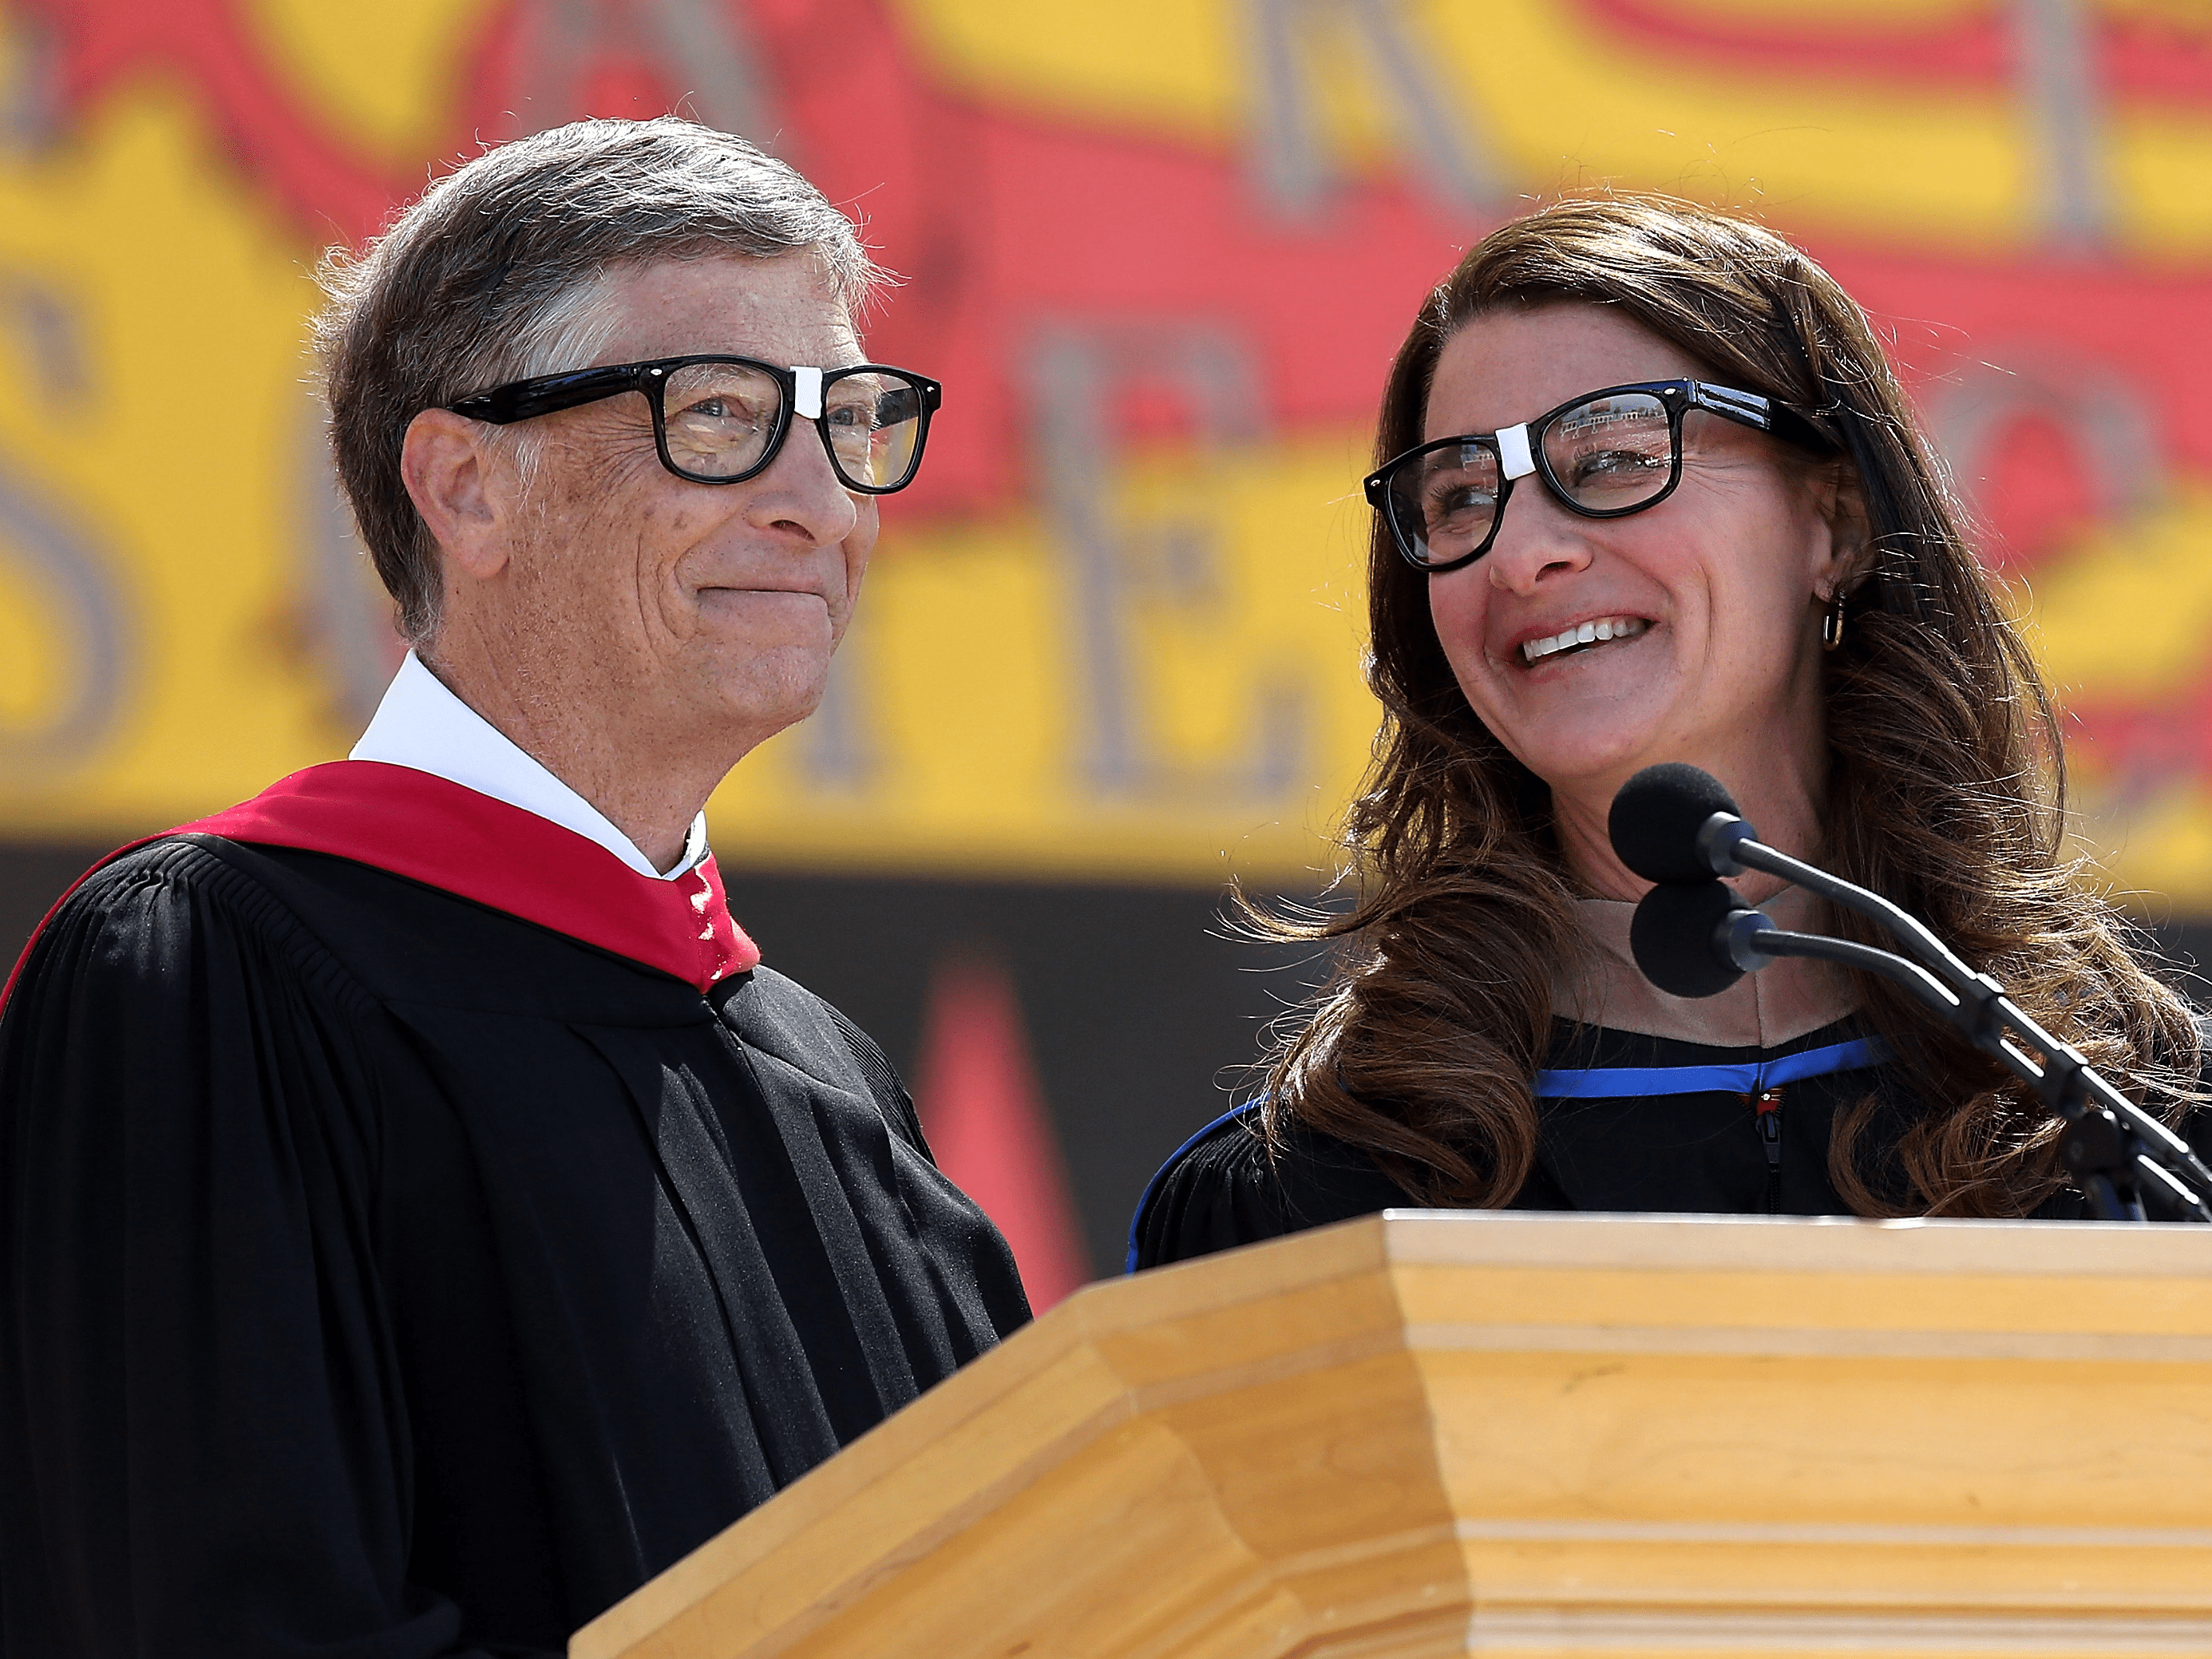 In 2010, Buffett and Bill Gates created the Giving Pledge.